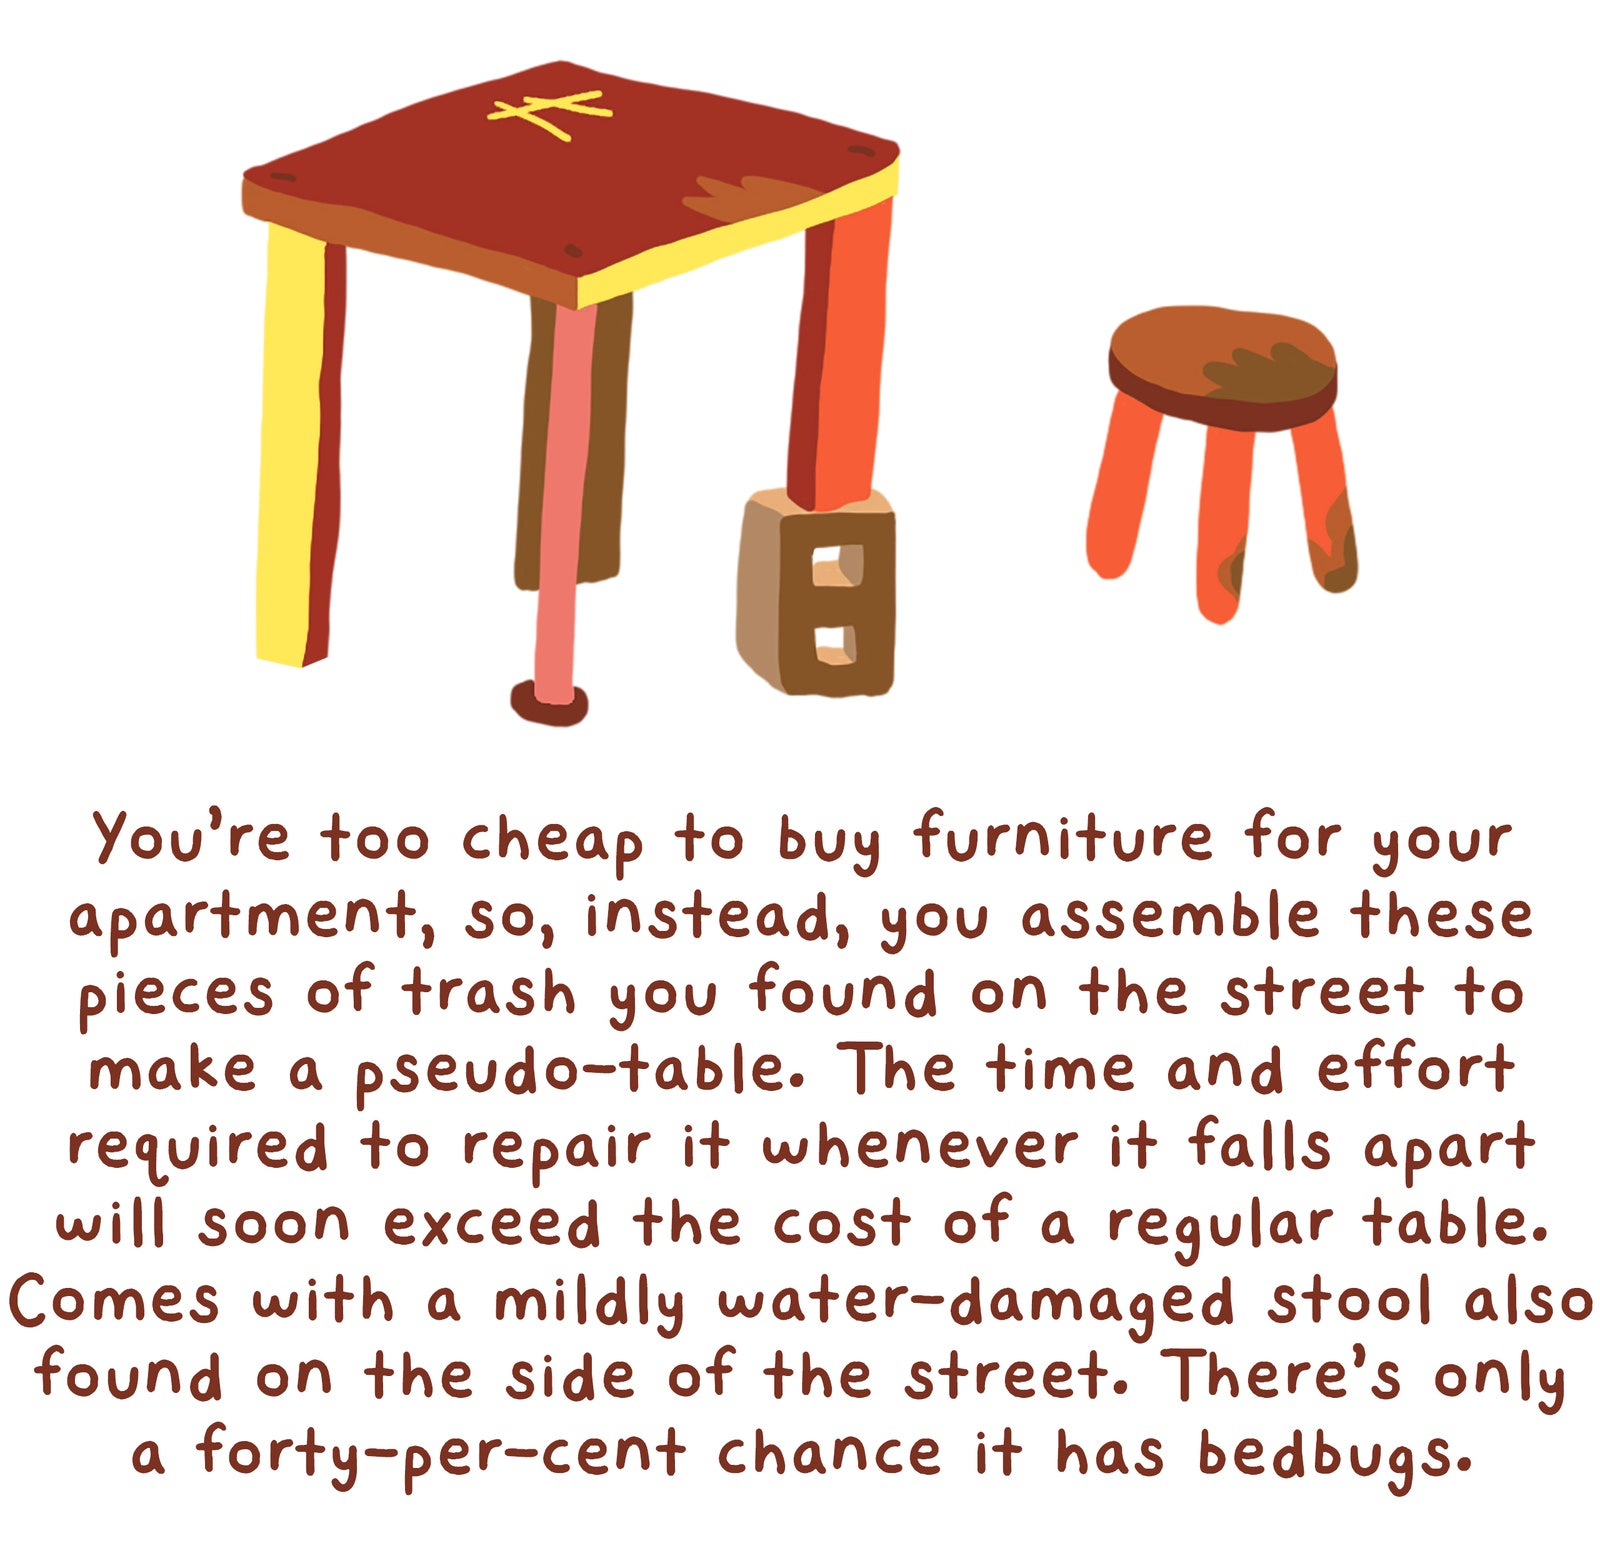 Furniture Of Your Past, Present, And Future | The New Yorker in Past And Present Furniture